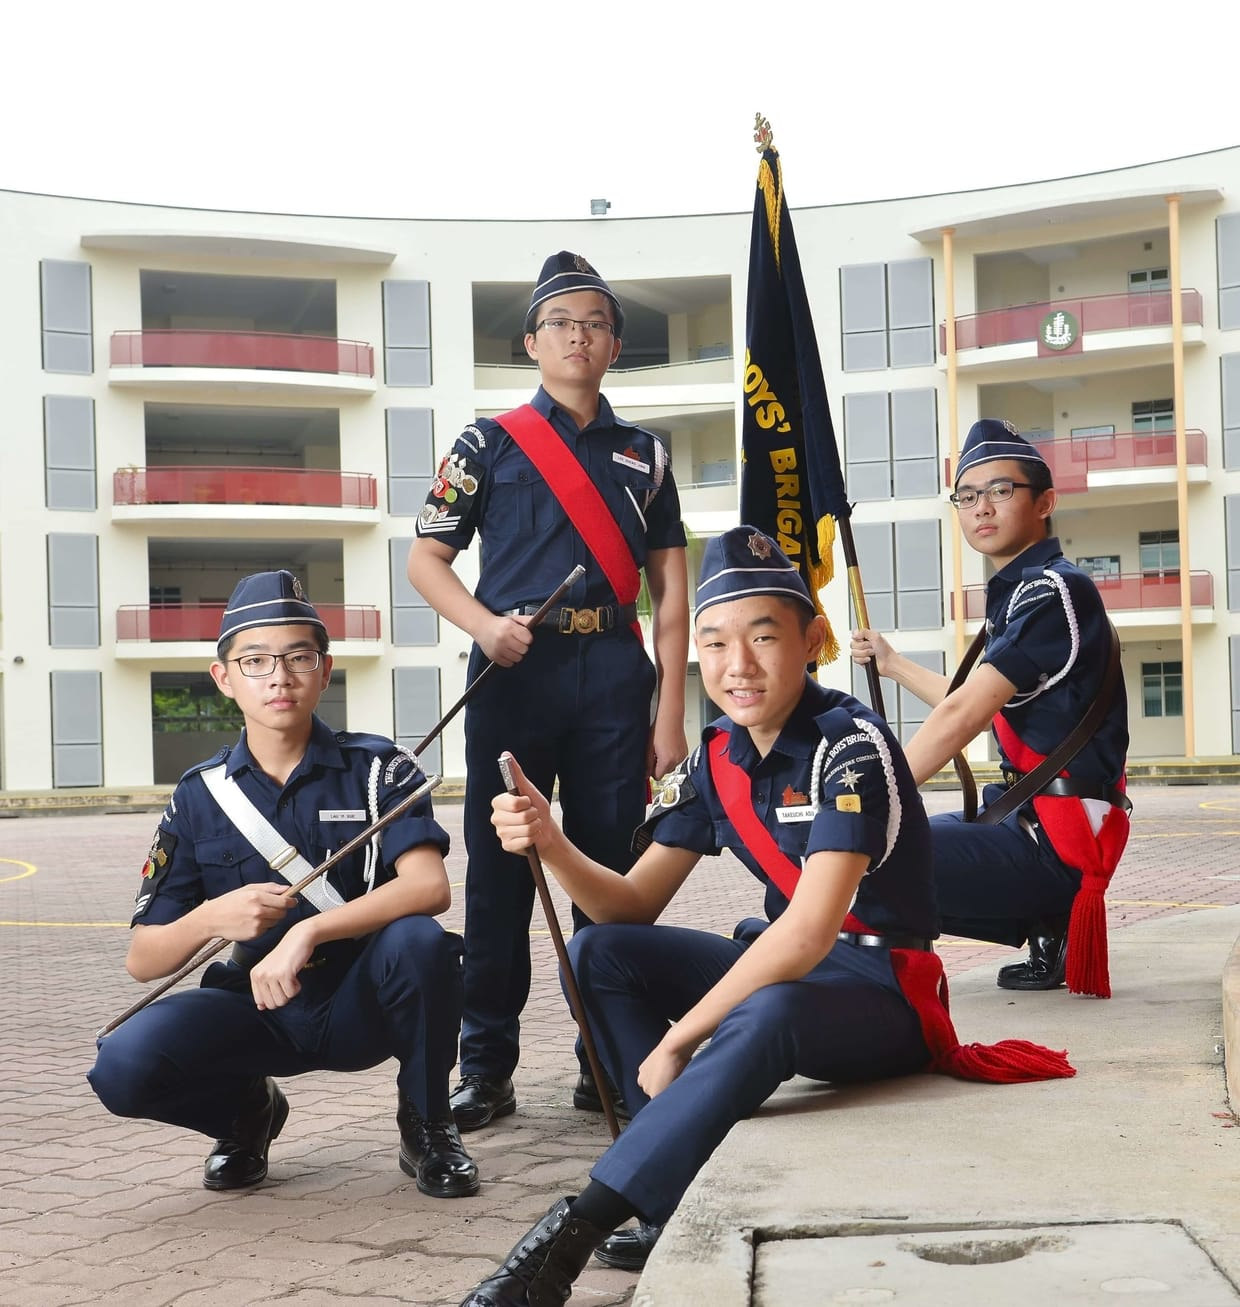 School Values